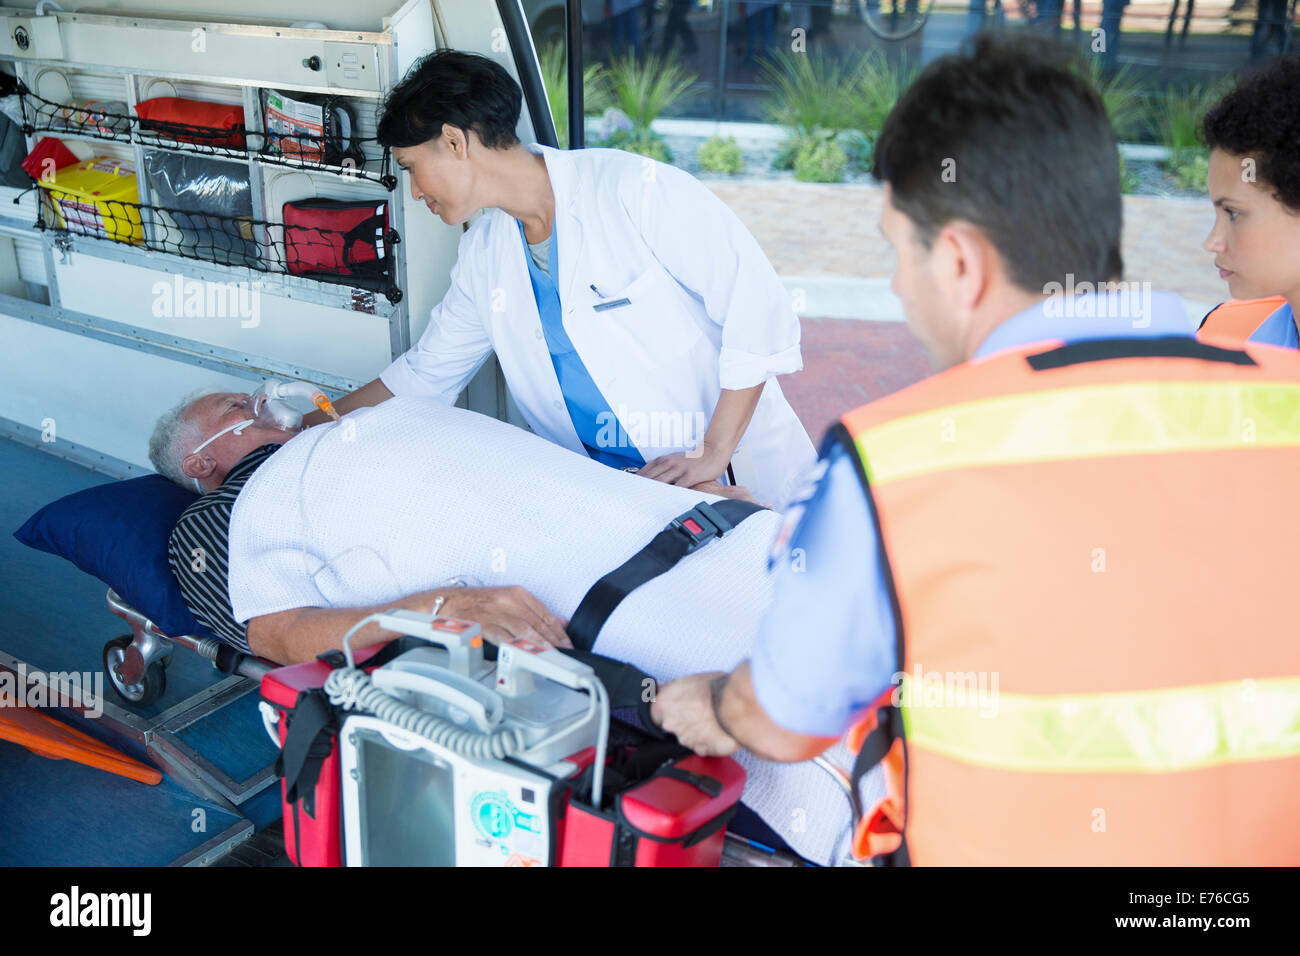 Doctor examining patient on ambulance stretcher - Stock Image